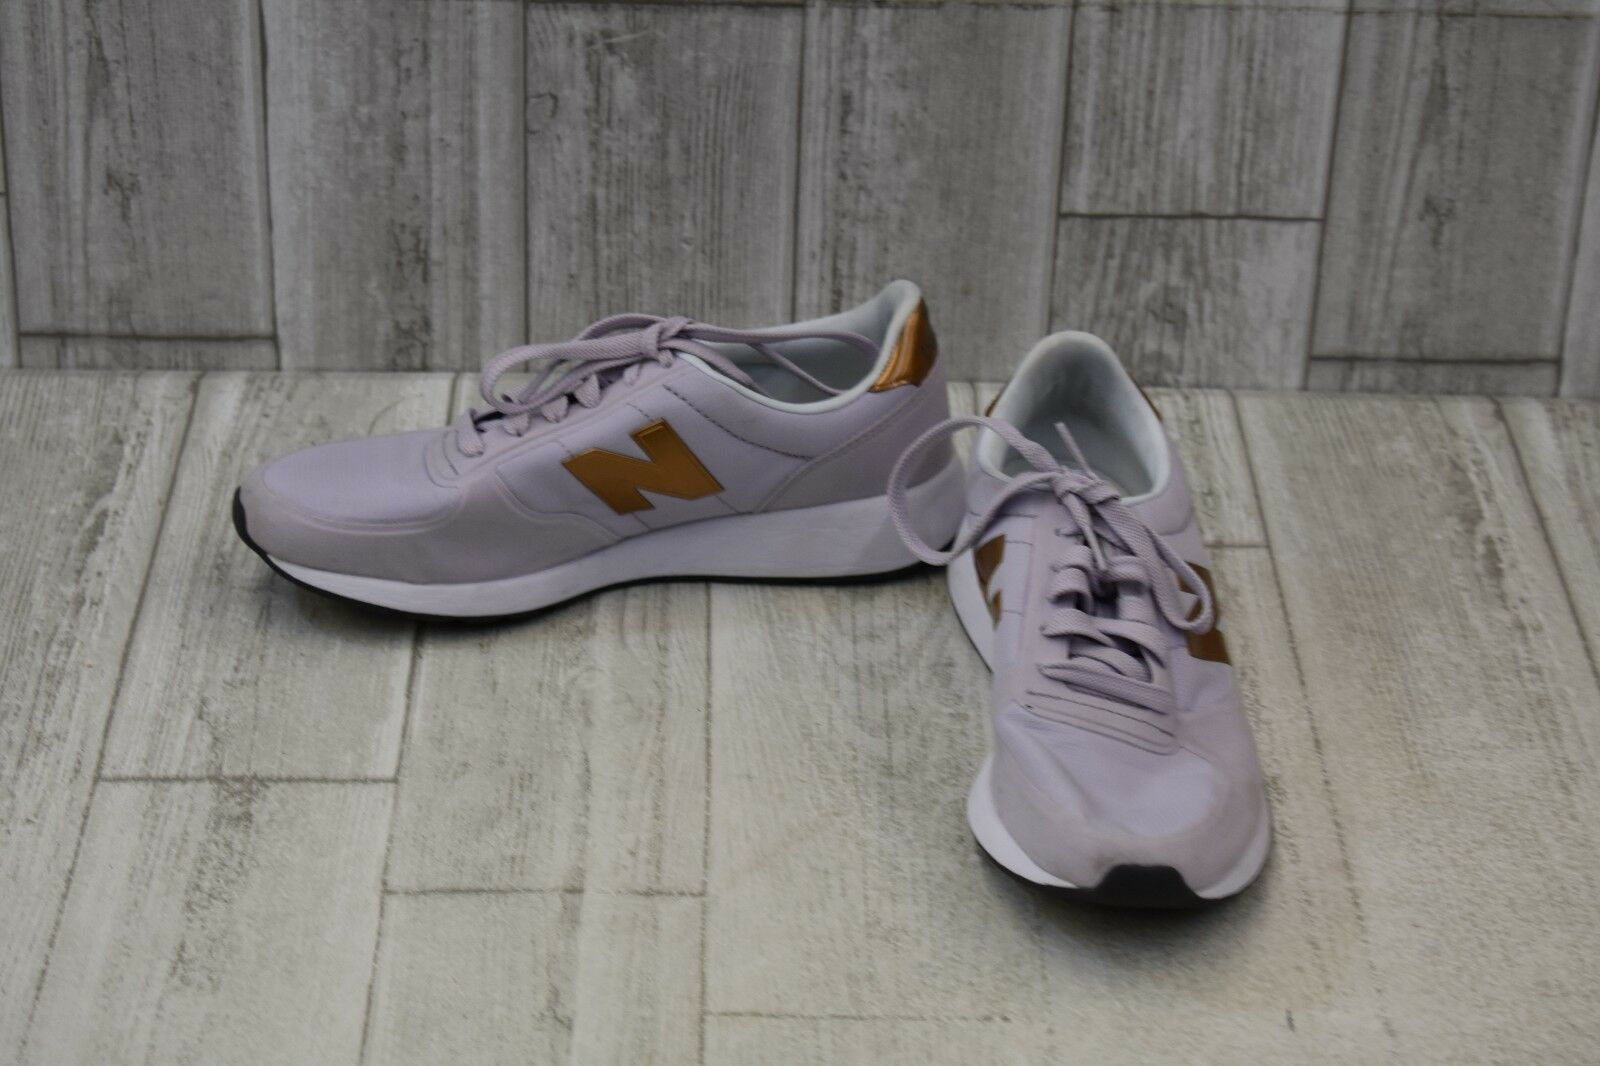 New Balance 215 Sneaker, Women's Size 8.5 B, Grey Bronze